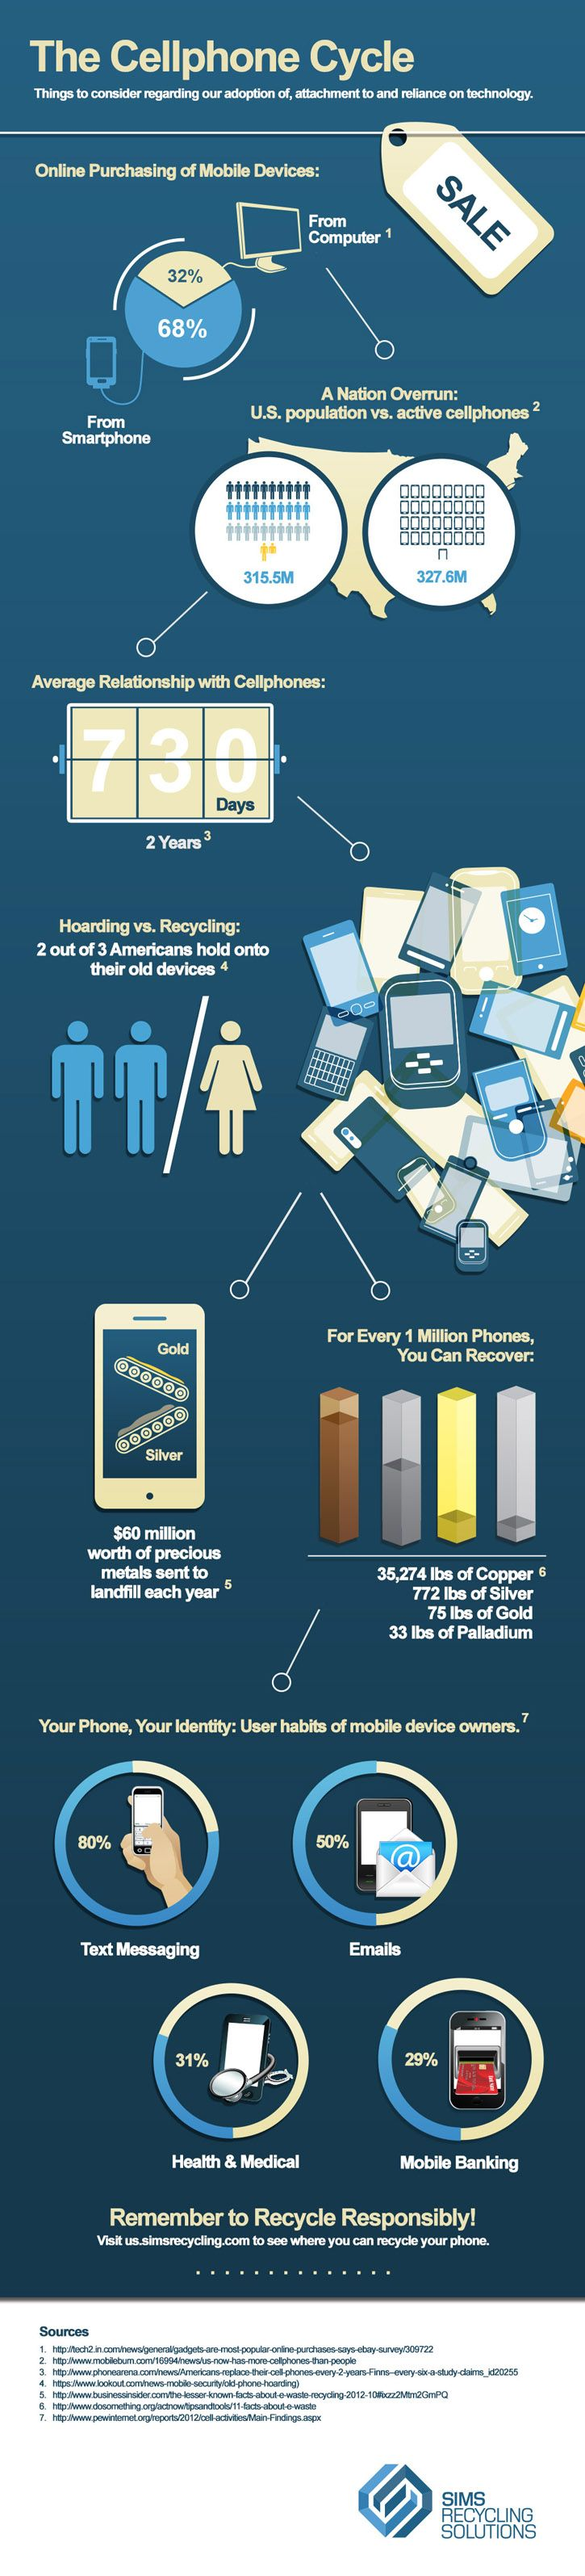 For every 1 million phones recycled, 75lb or $1.5m worth of gold is recovered!